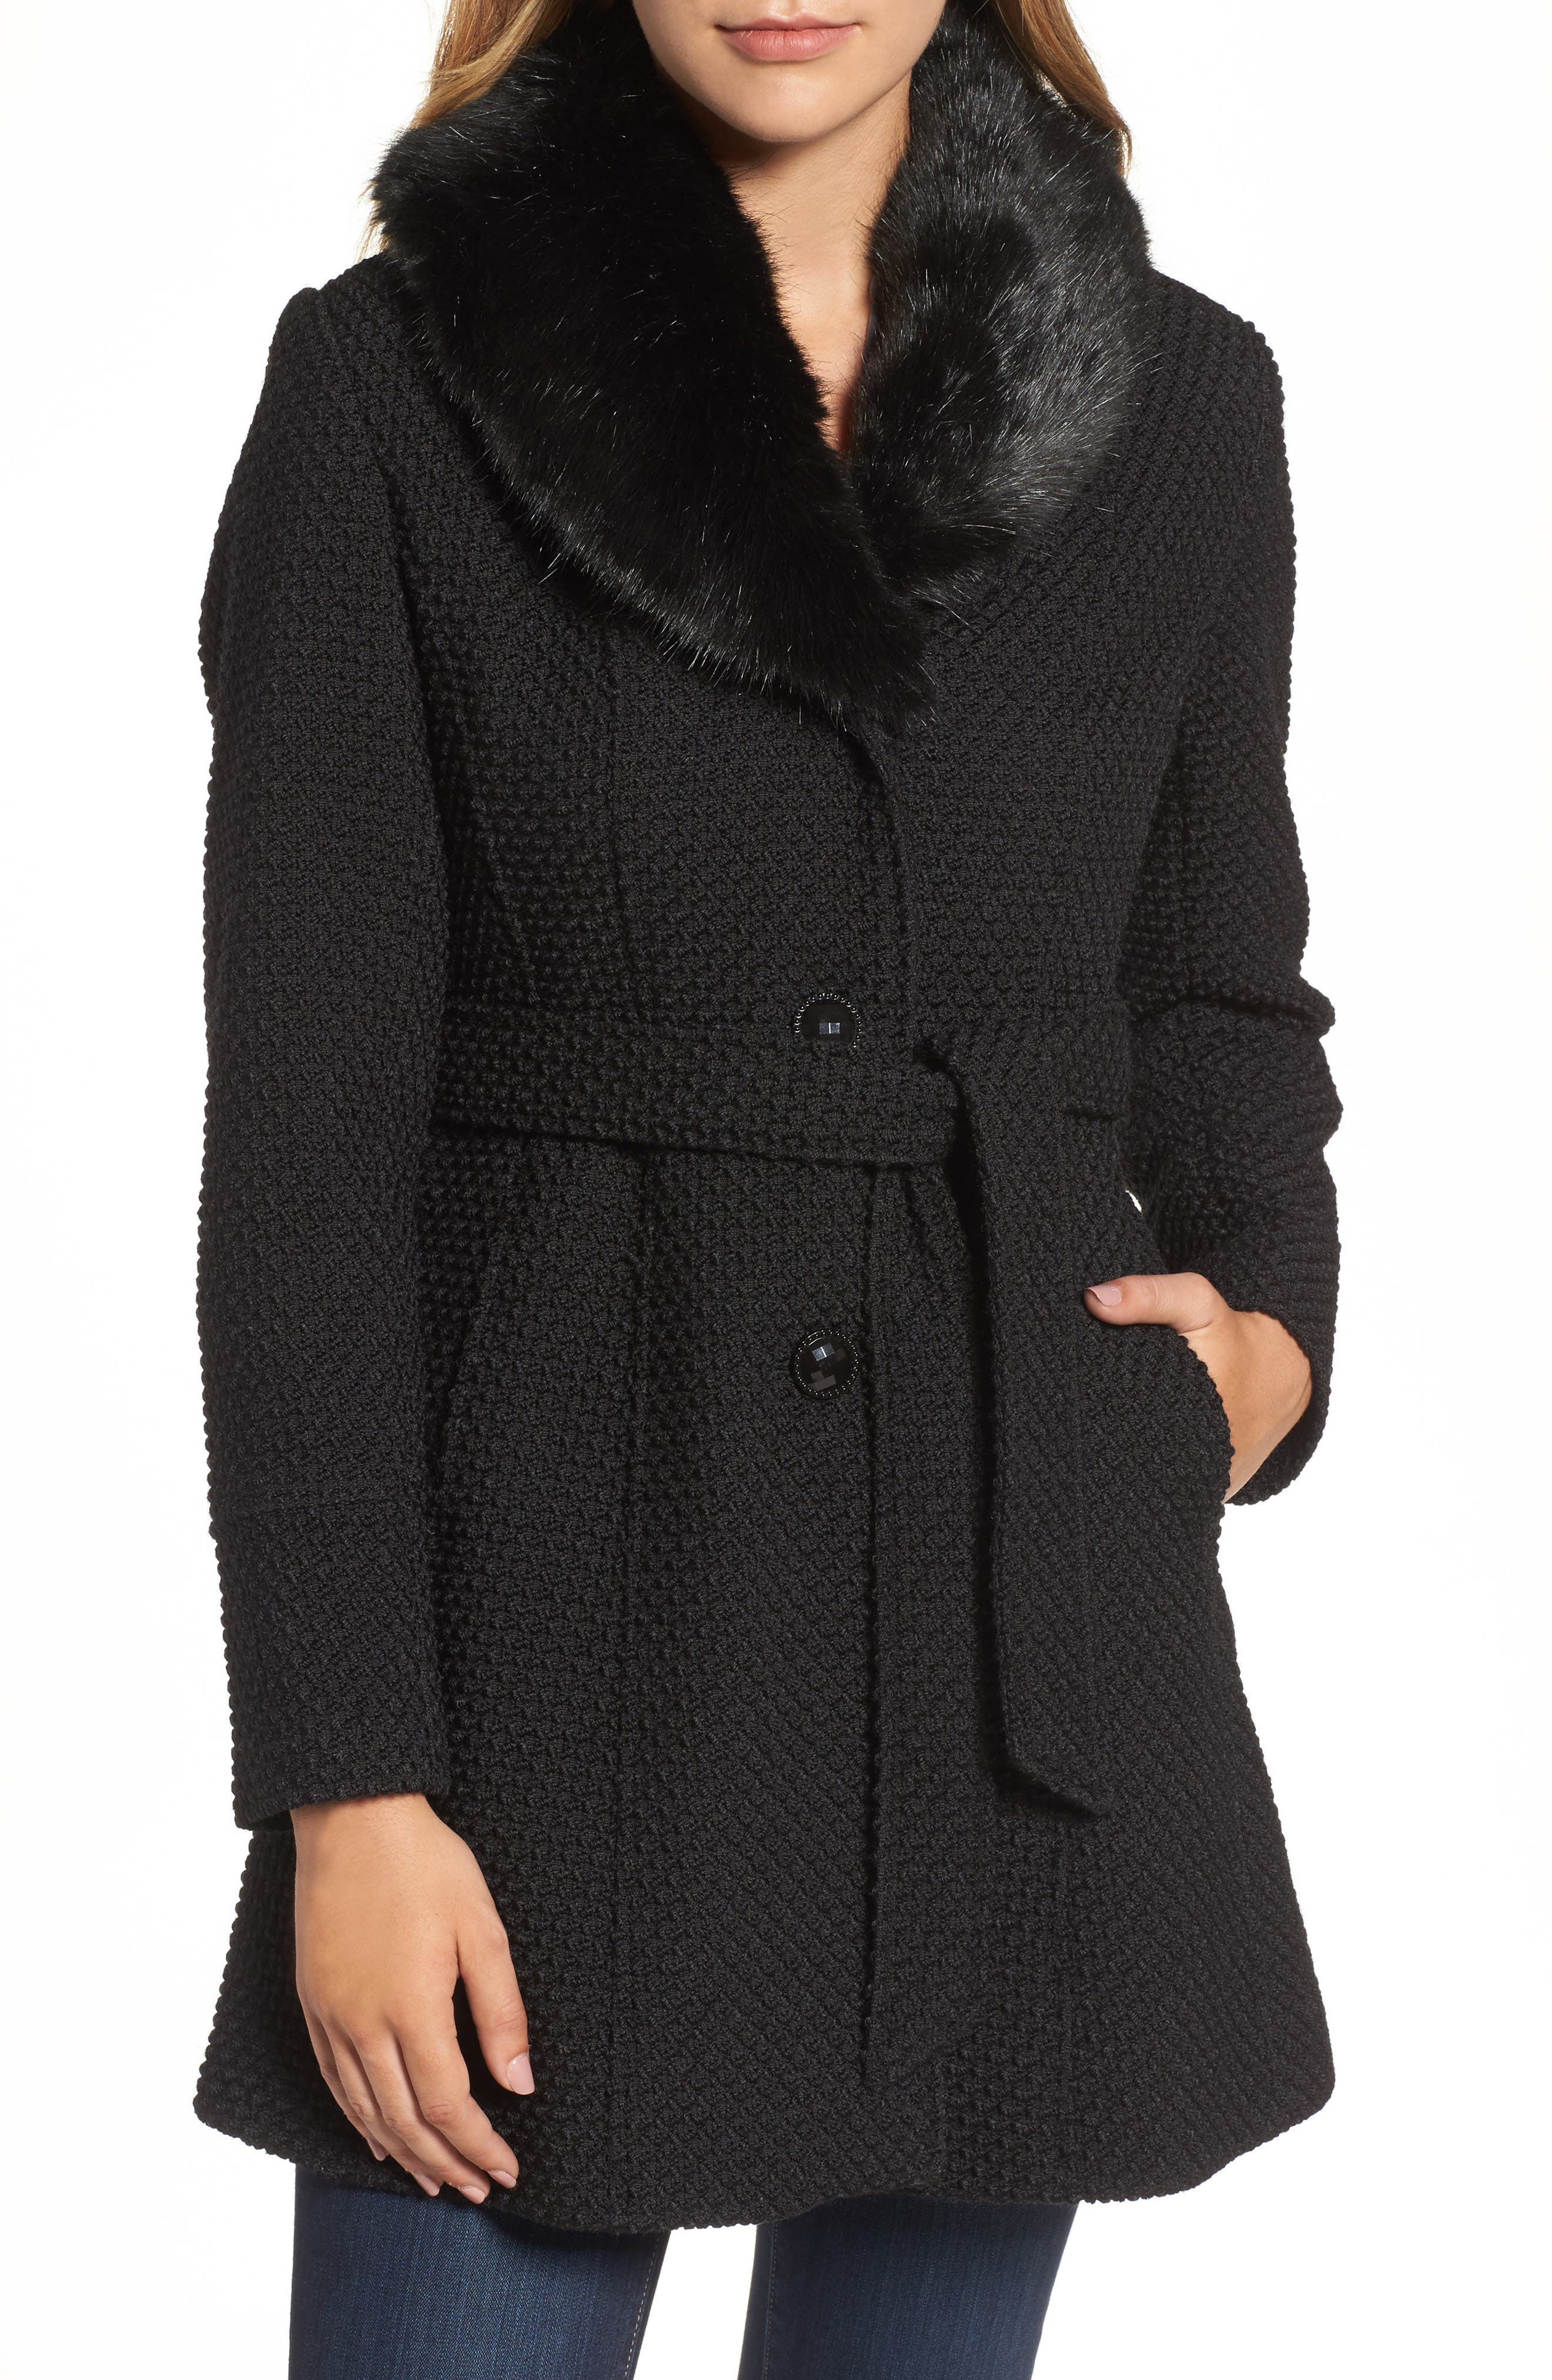 Belted Coat with Faux Fur Collar,                         Main,                         color, Black